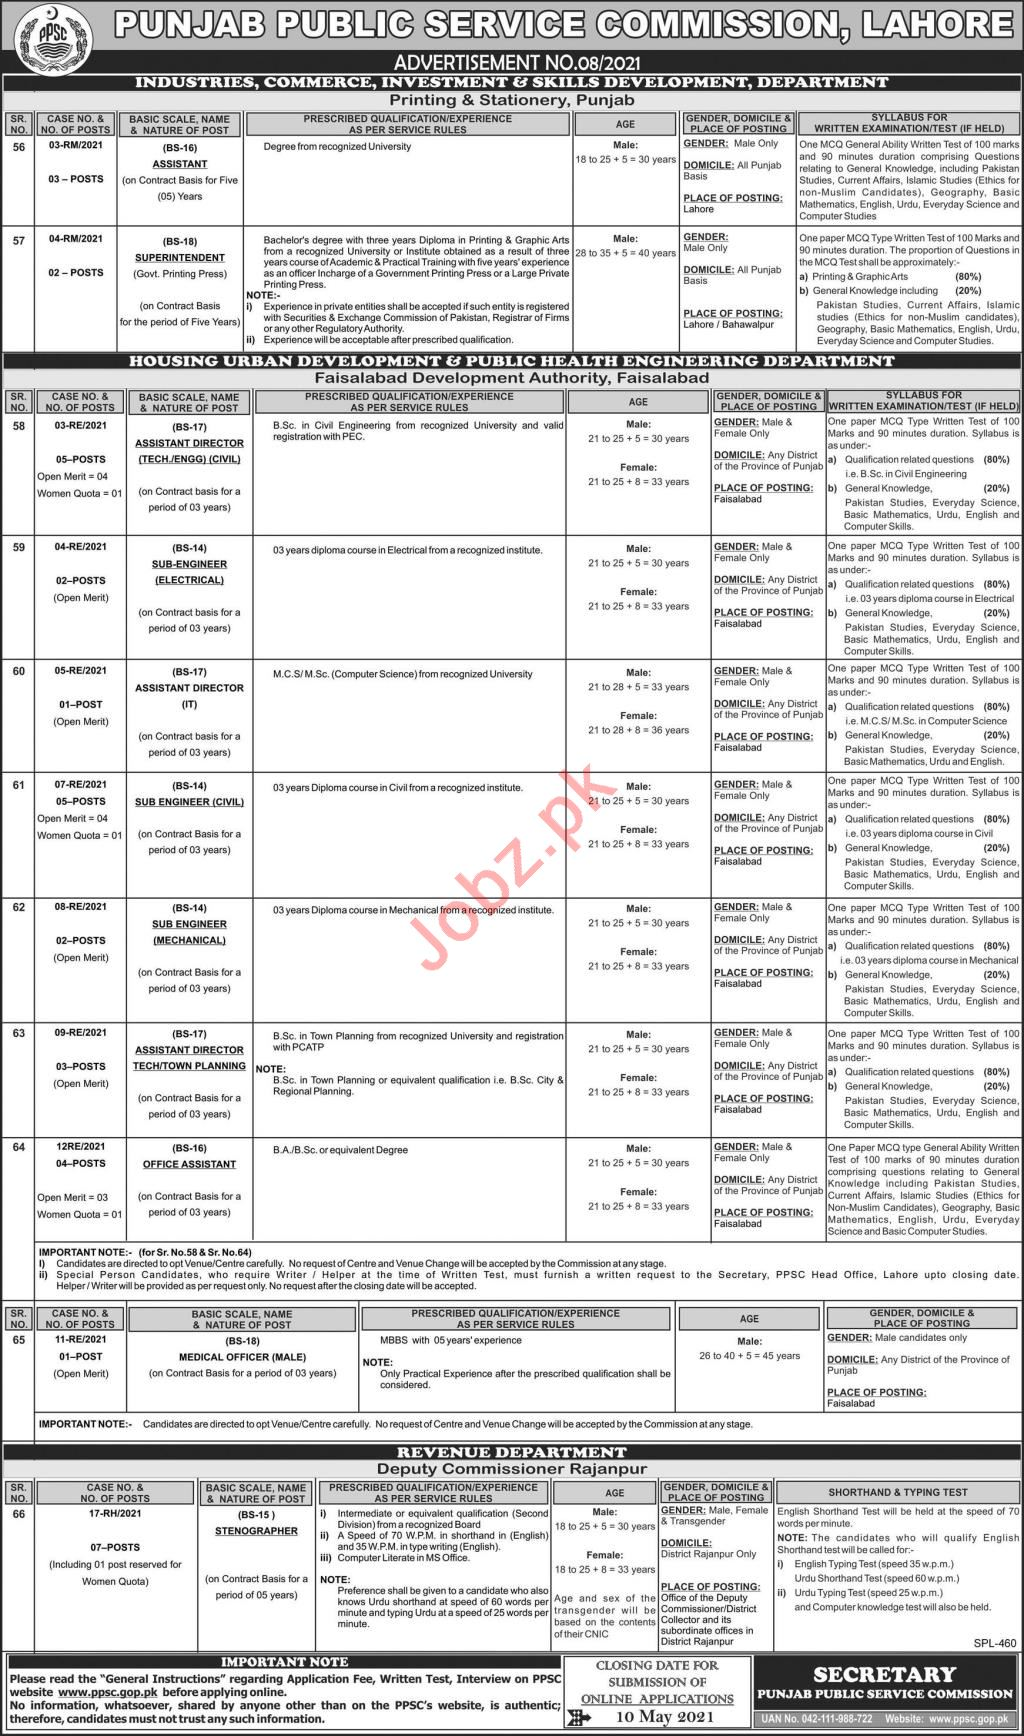 PPSC Punjab Public Service Commission Jobs May 2021